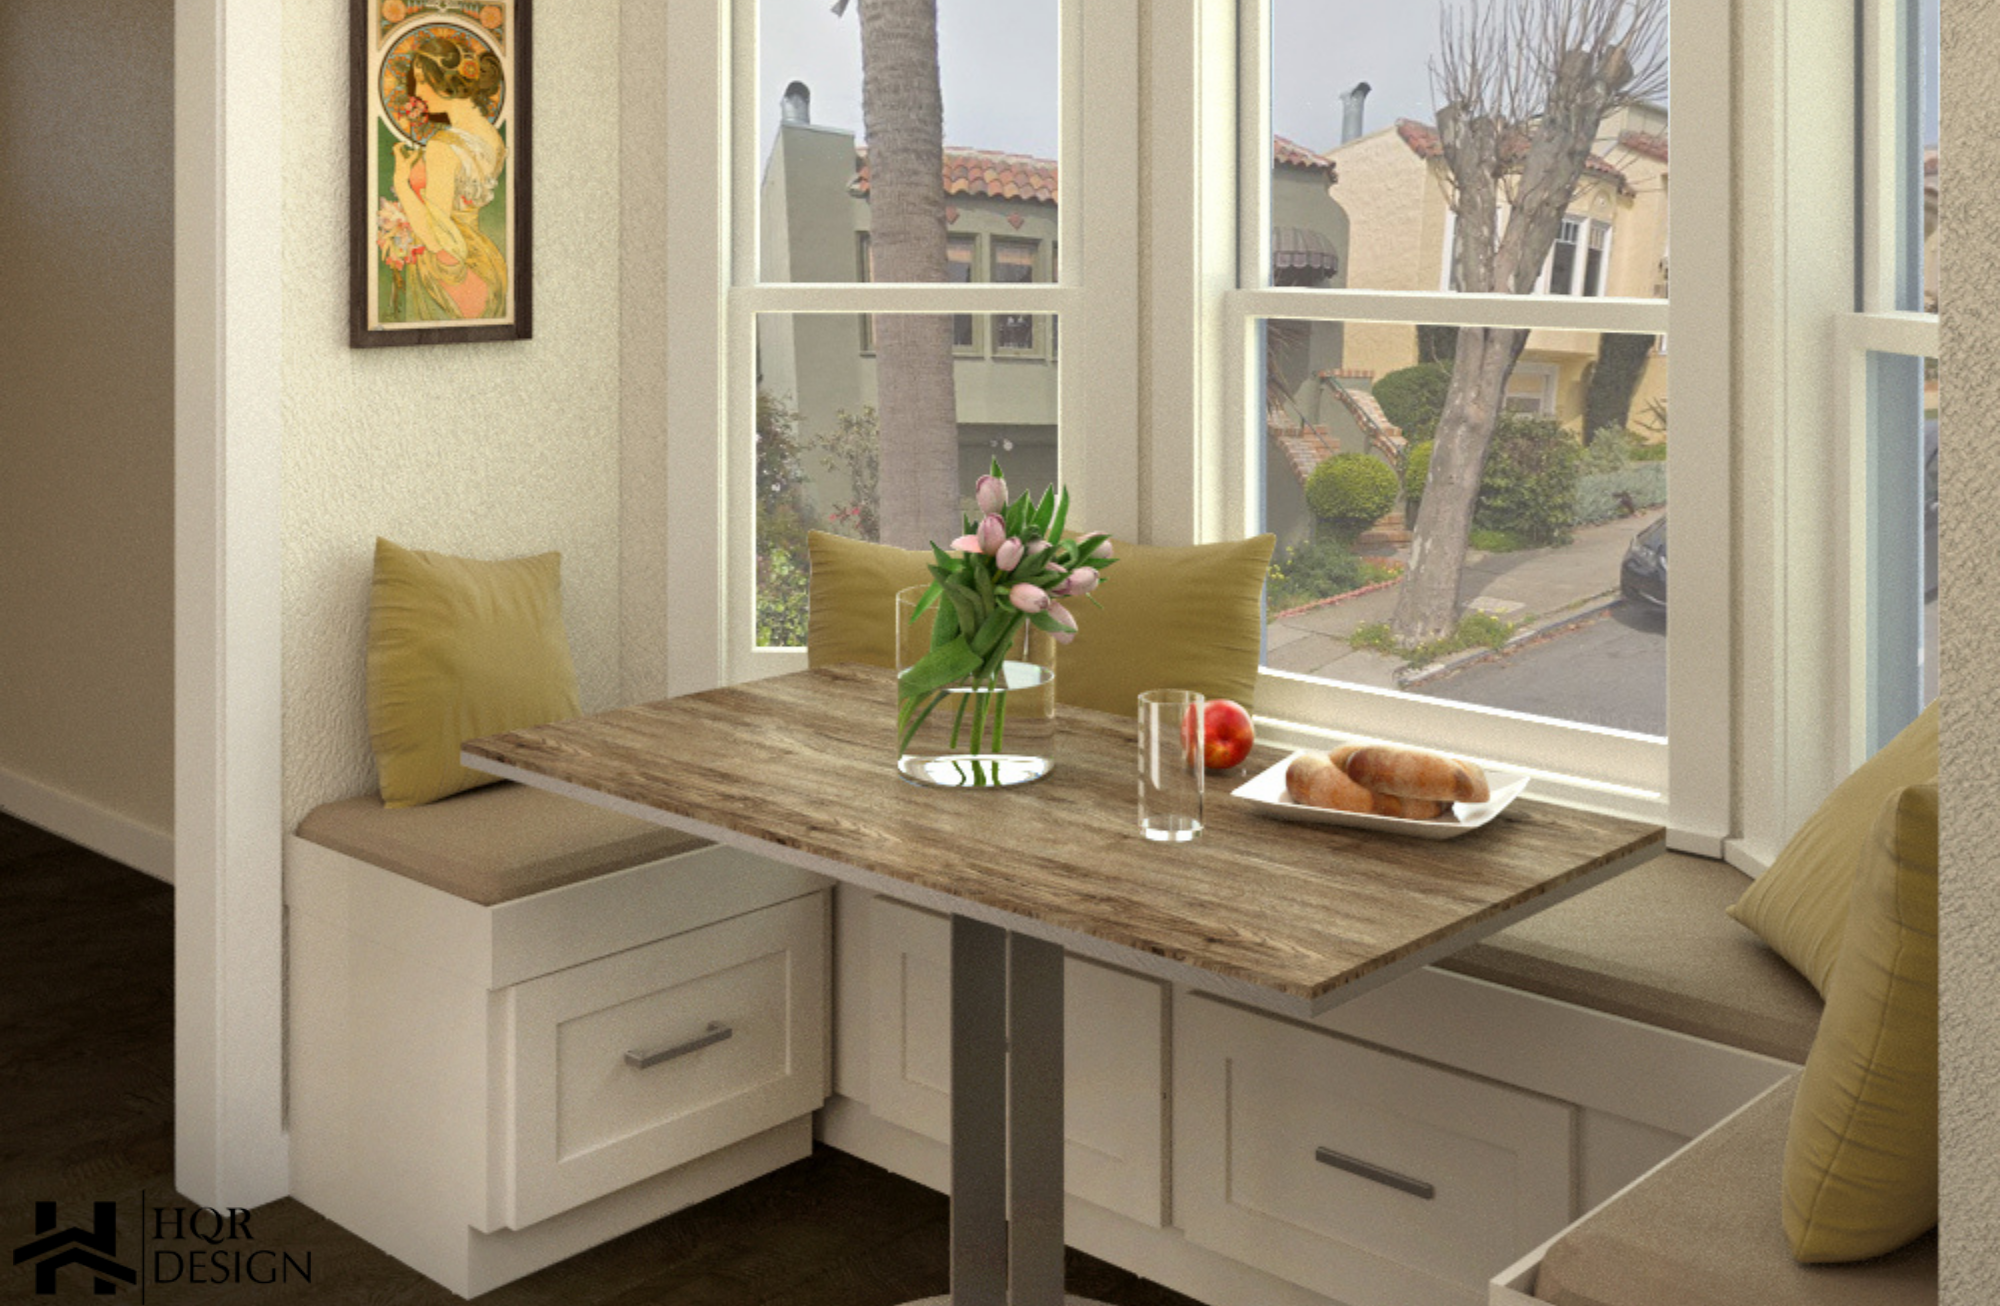 SF Open layout of kitchen and dining room (2)